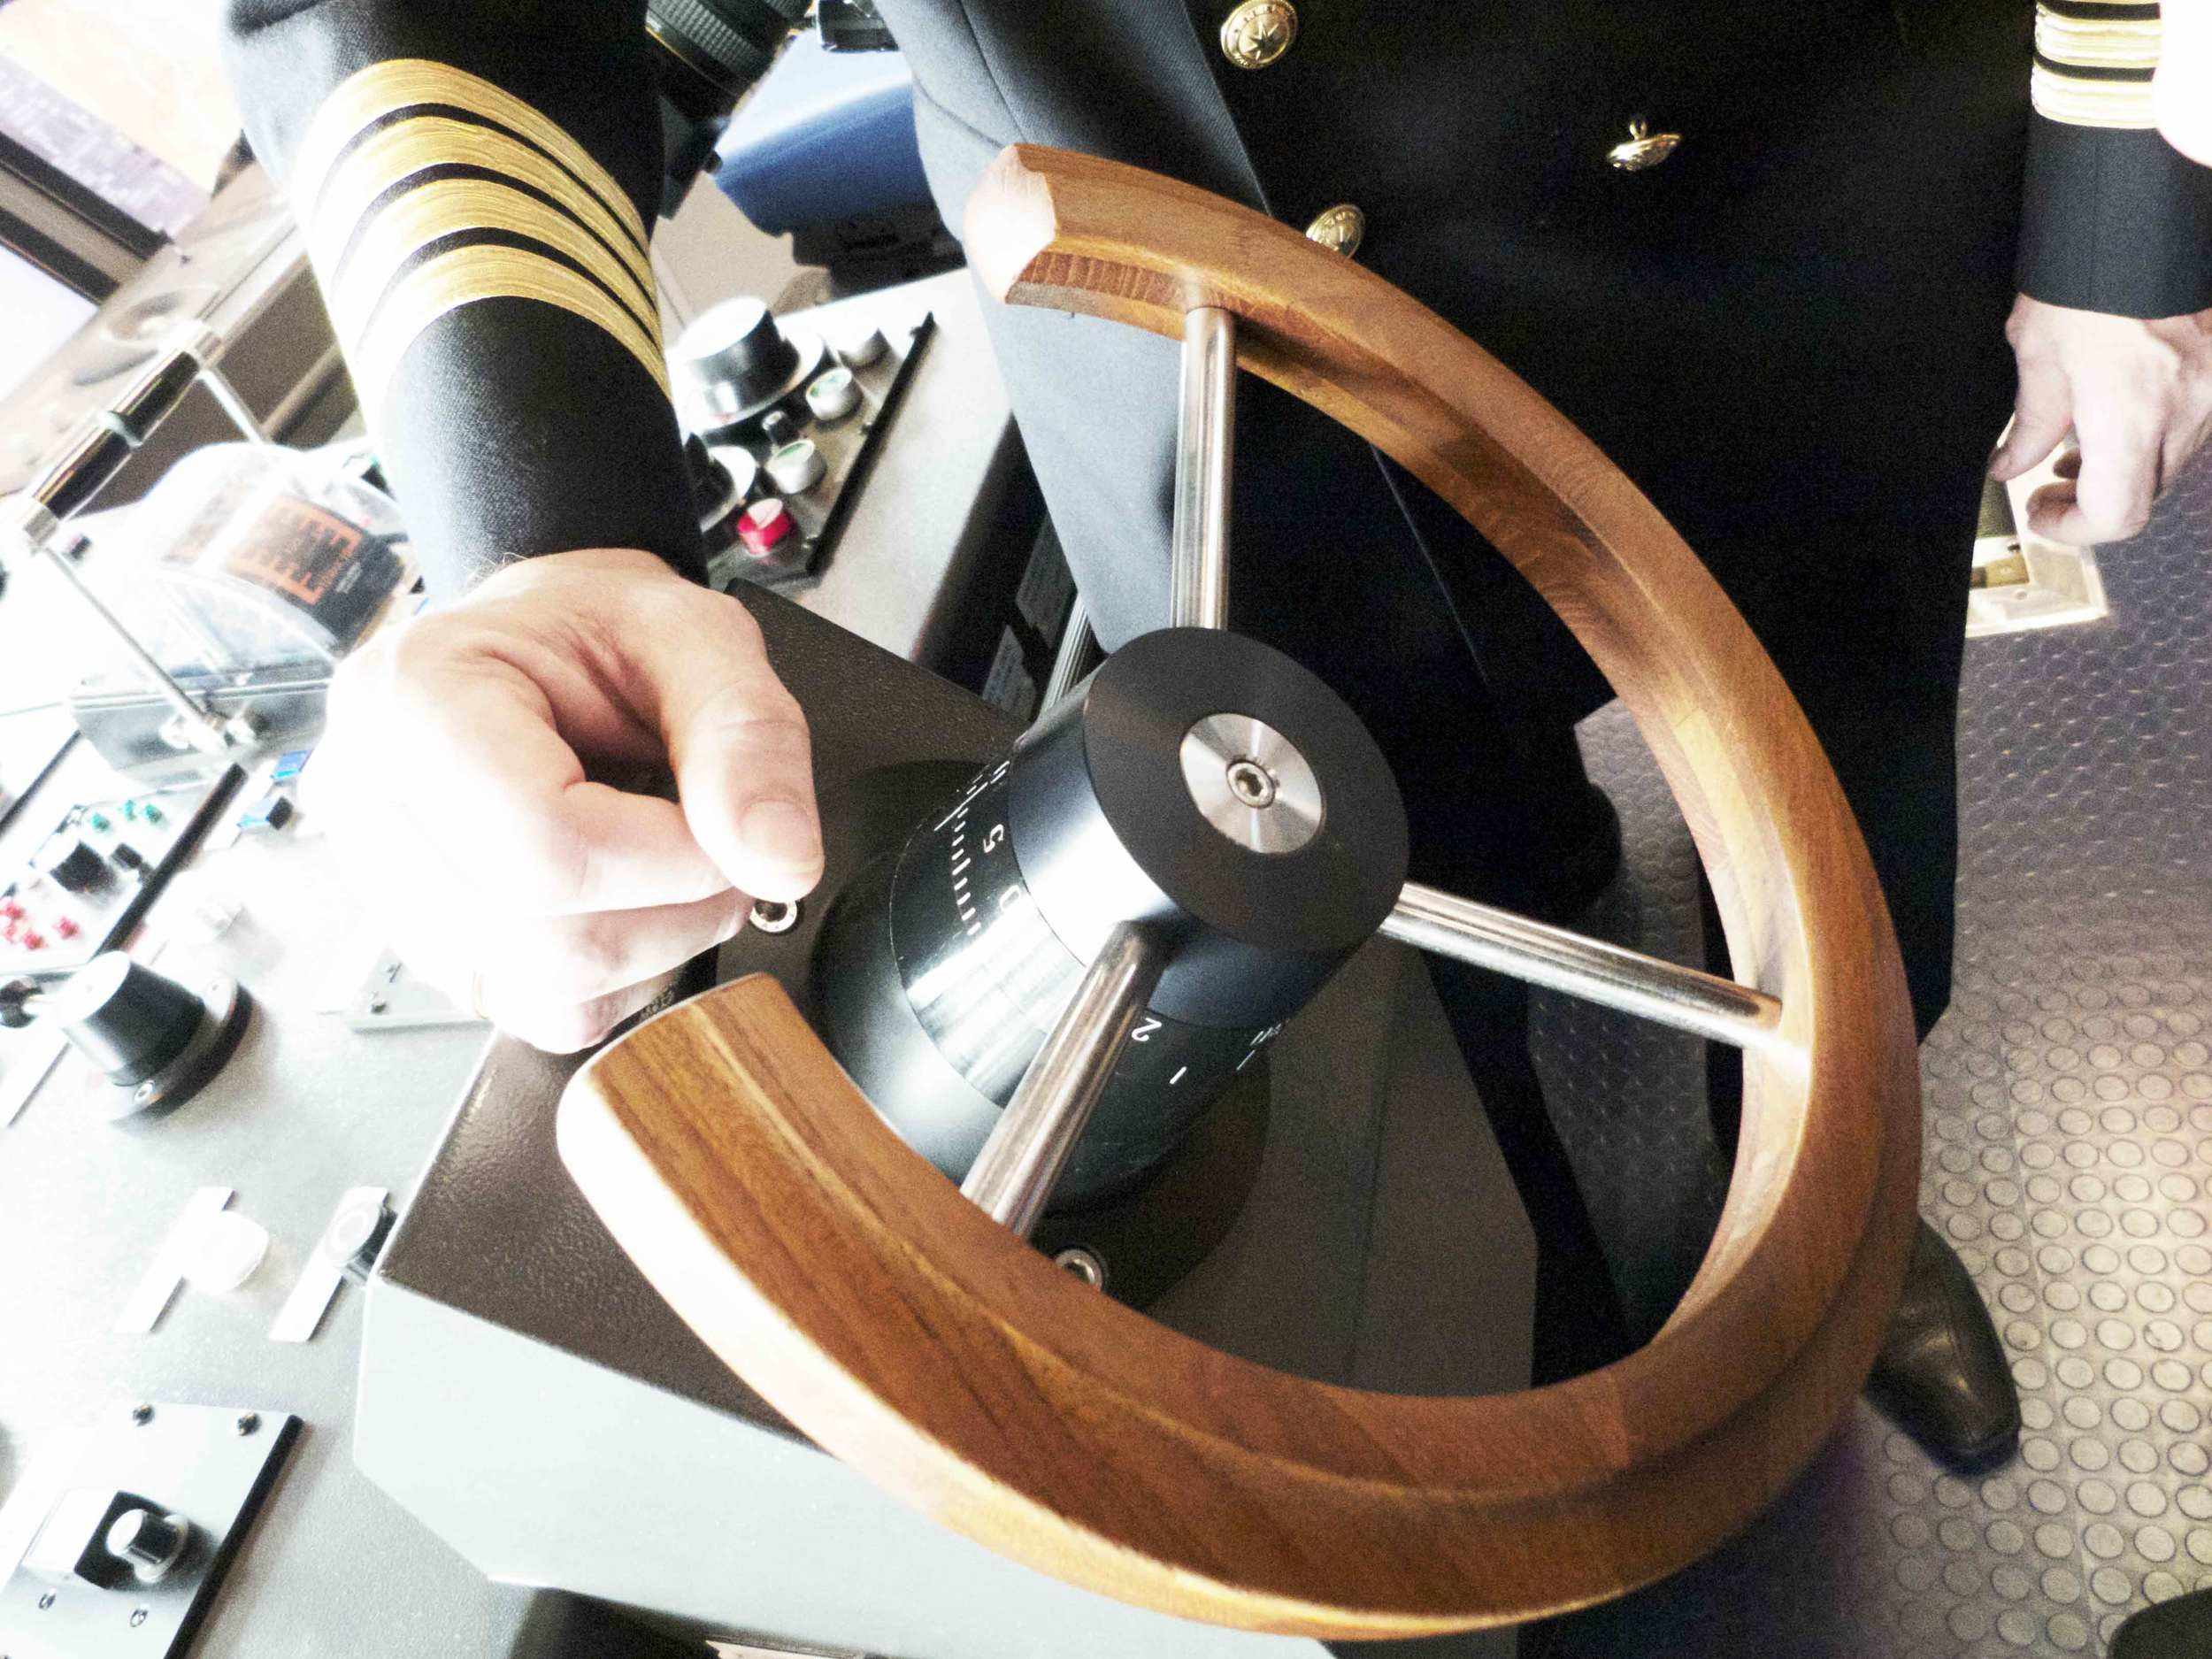 Modern super ships still have wooden steering wheels. This picture is from a MAERSKtriple E class container ship.